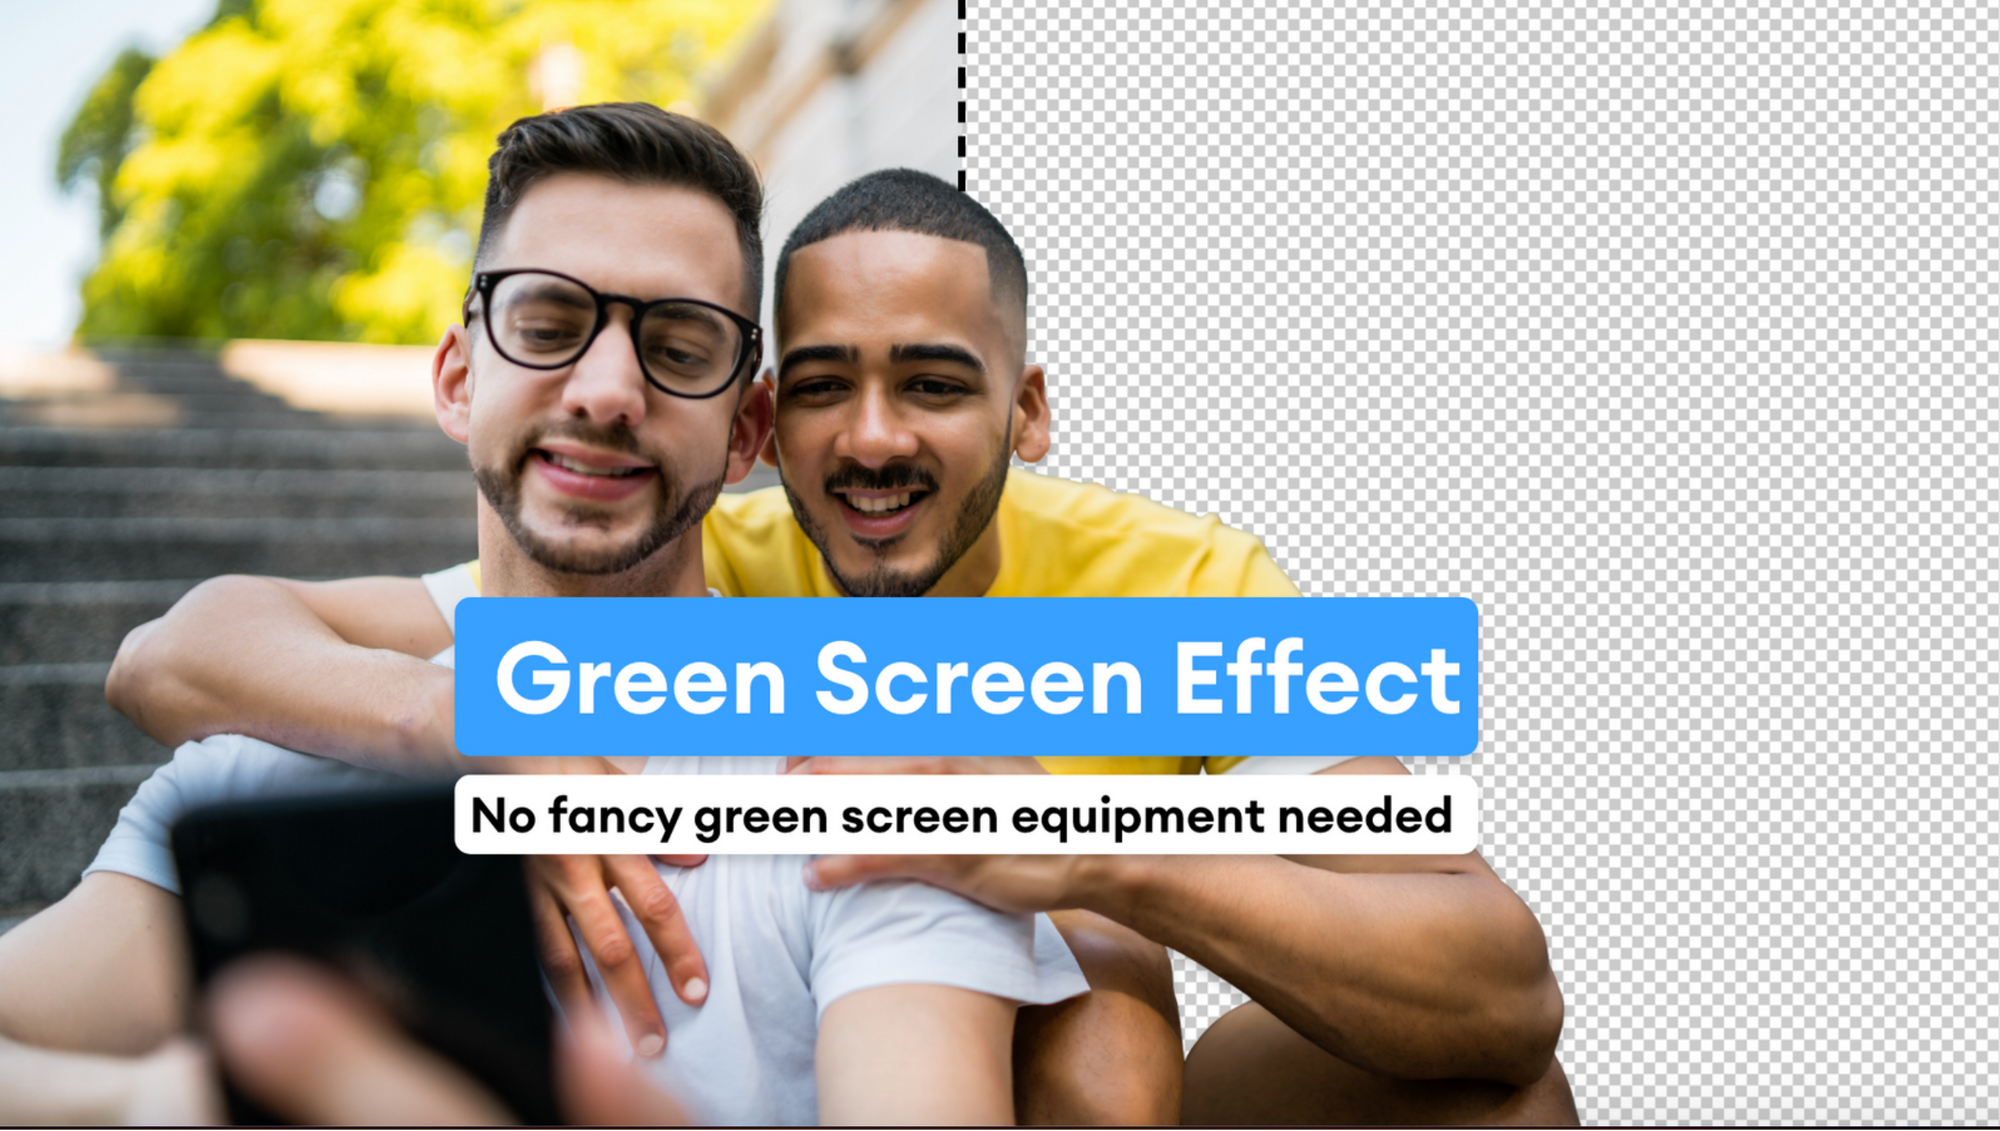 How To Use Green Screen Editor Online In Seconds